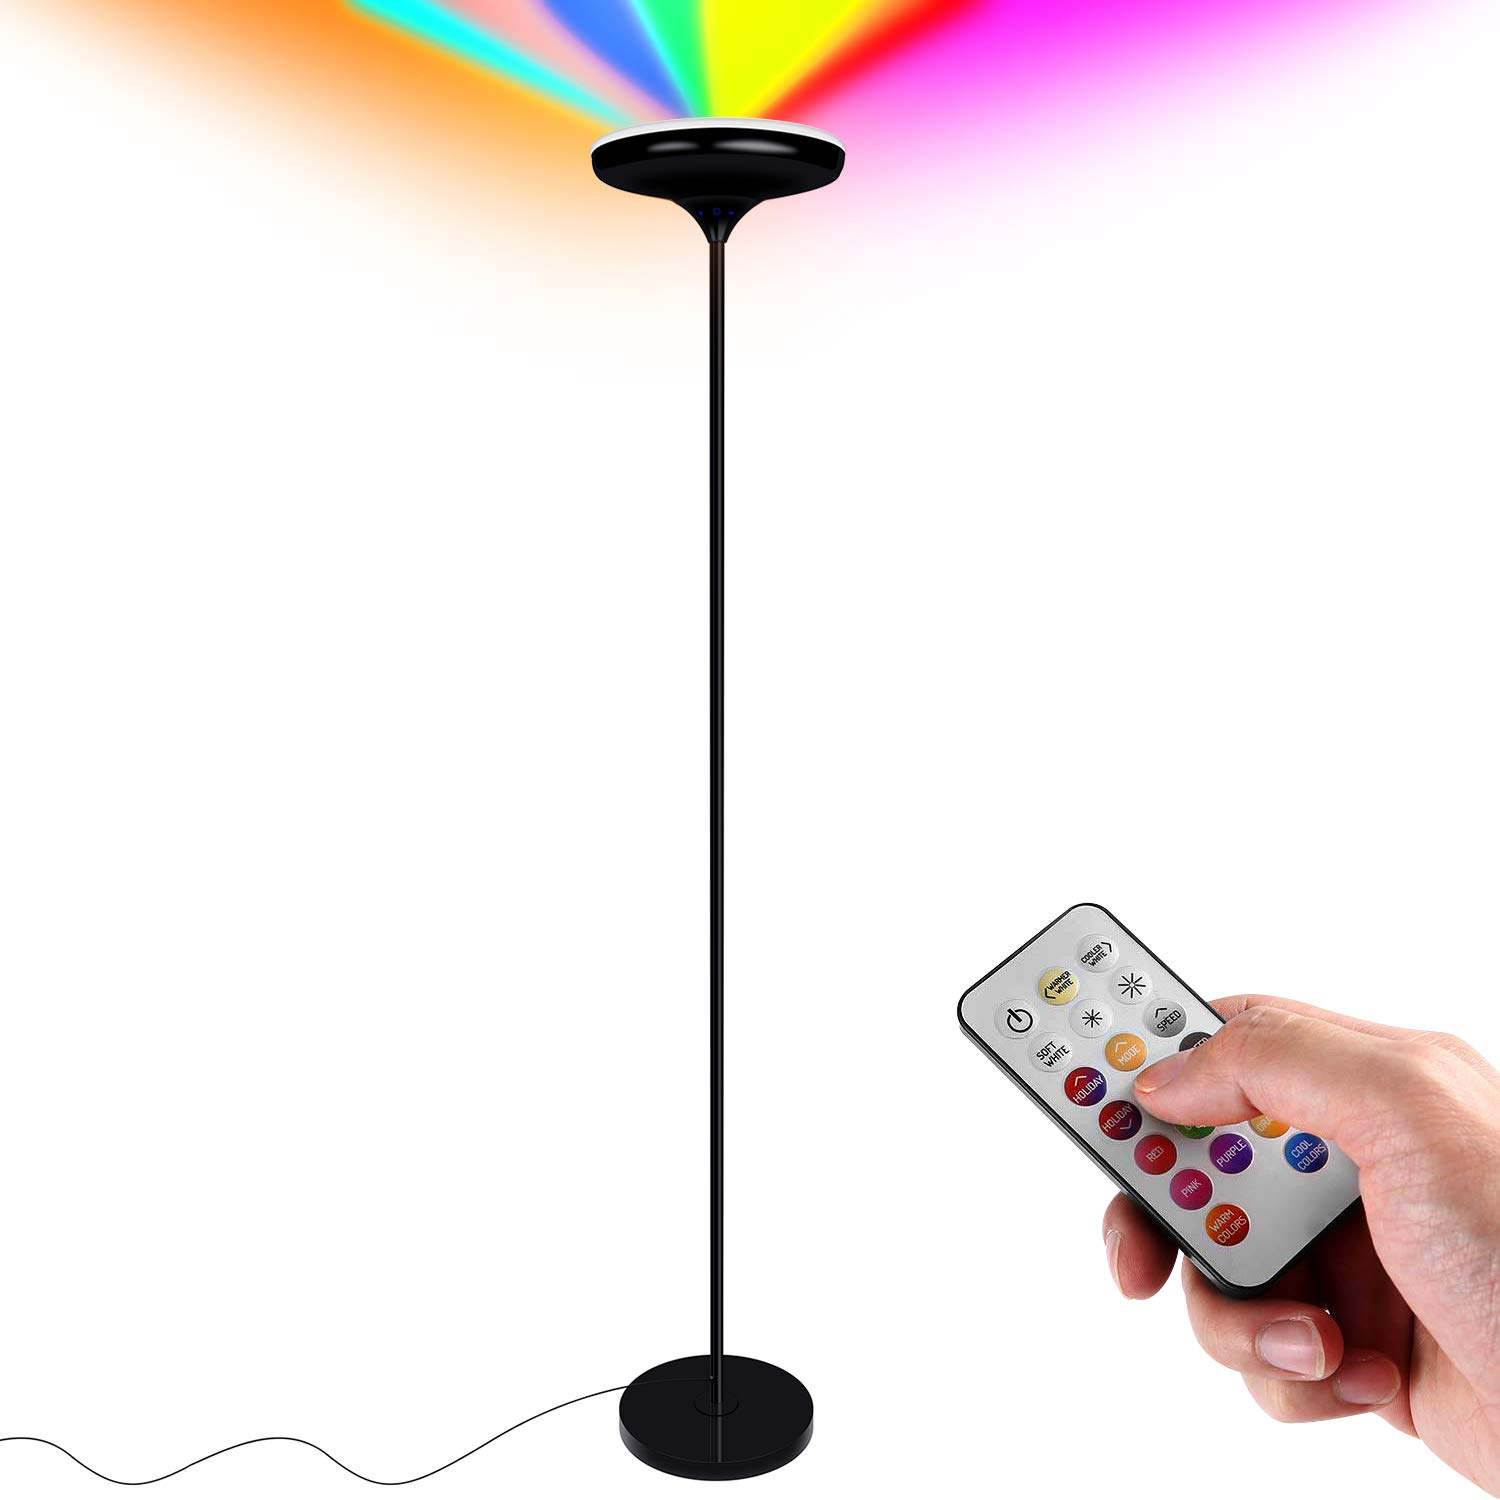 FaithSail Color Changing LED Torchiere Floor Lamp, Remote Control 24W (200W Equivalent), Dimmable and Adjustable, Reading Uplight Standing Floor Light for Bedrooms, Living Room and Office by FAITHSAIL (Image #1)